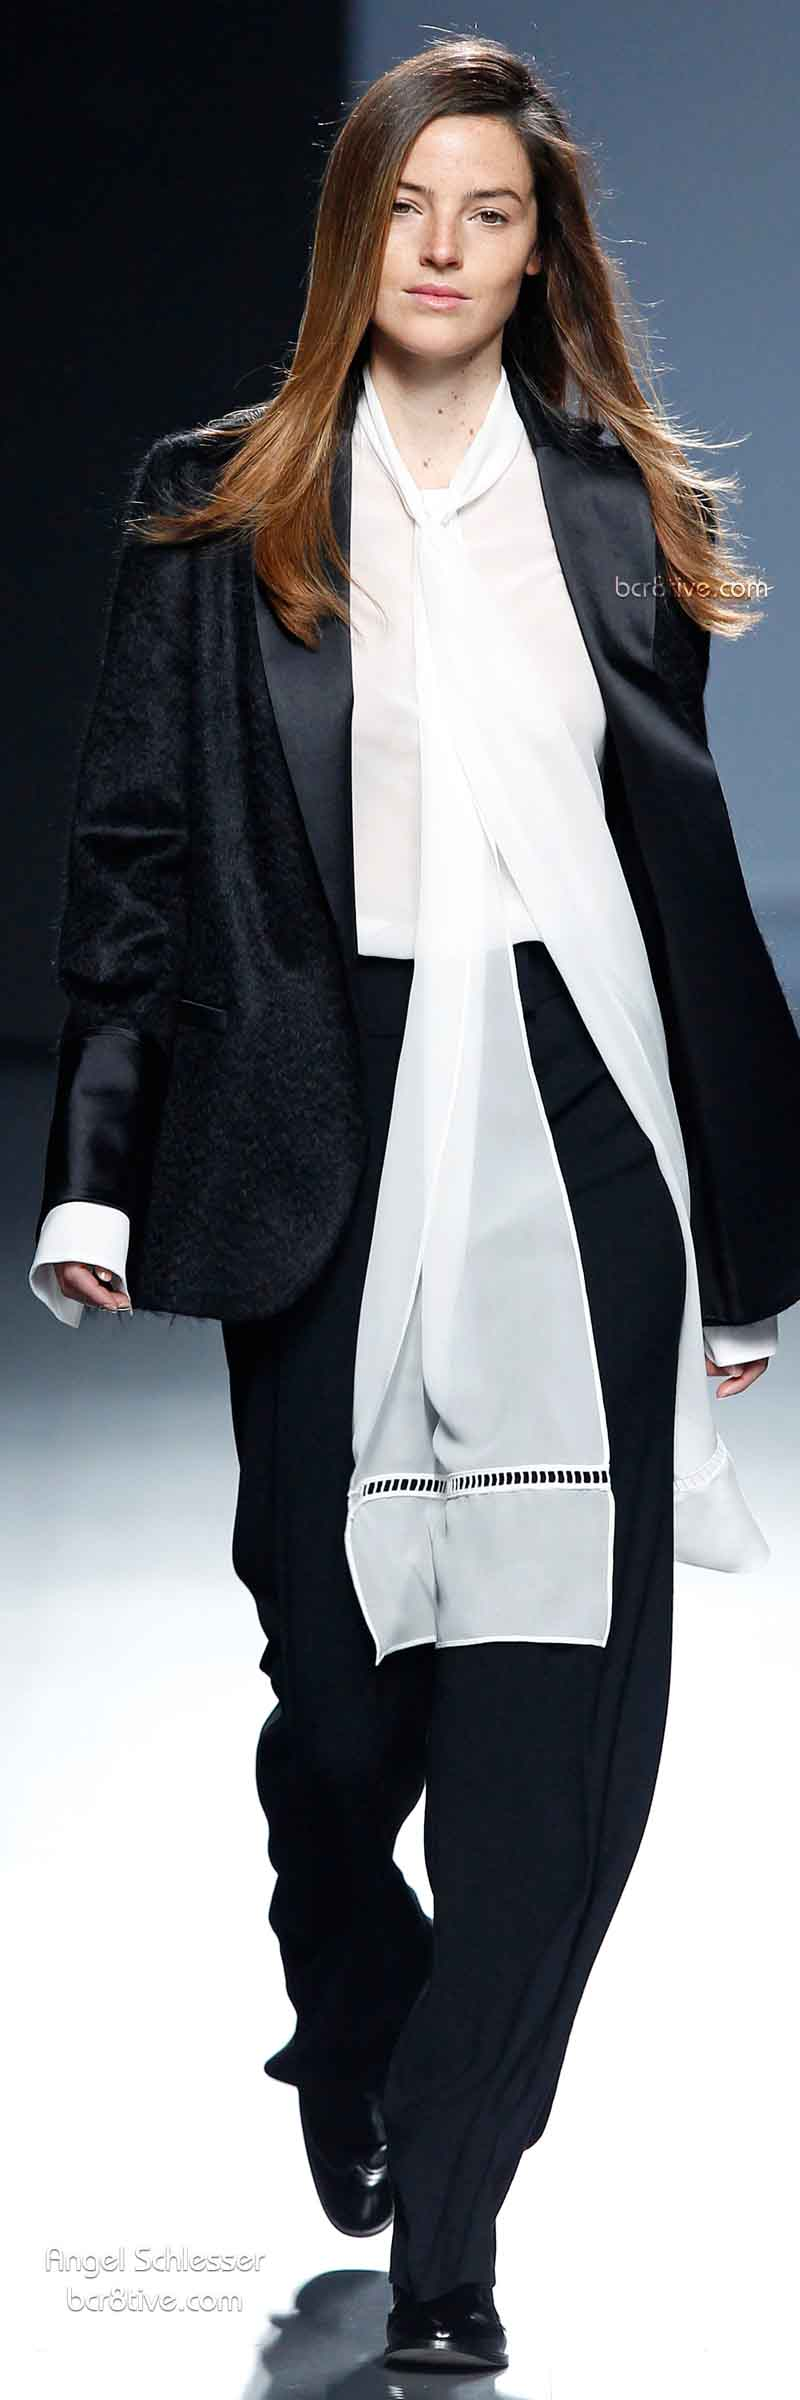 Fall 2014 Menswear Inspired Fashion - Angel Schlesser